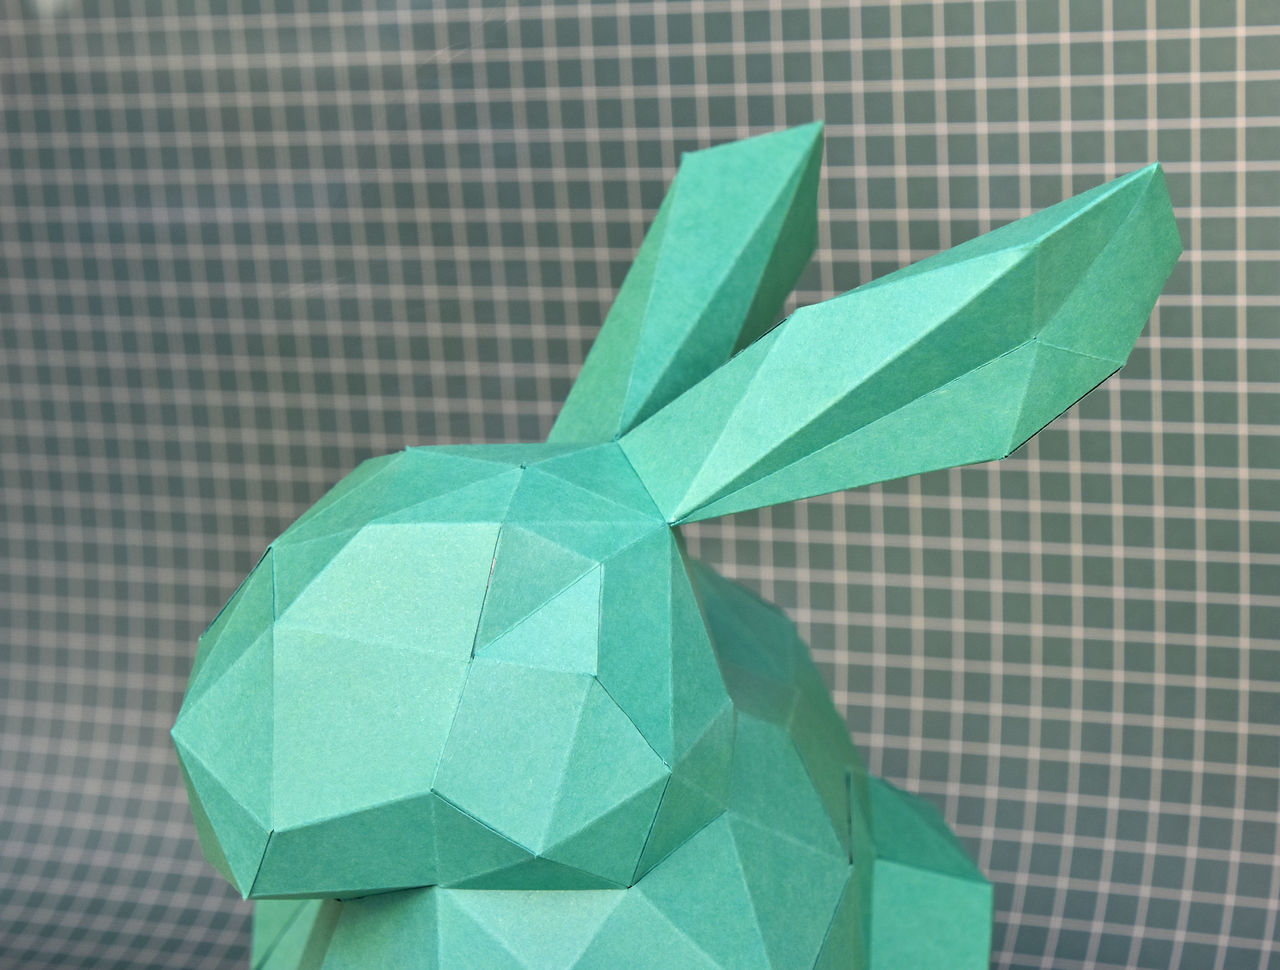 Paper handycraft, green rabbit over checkered background Background Checkered Pattern Close-up Easter Easter Ready Easter Sunday Geometric Geometric Art Green Color Greenery Handmade Handycraft Hobby No People One Person Paper Paper Art Paper View Papercraft Paperwork Rabbit